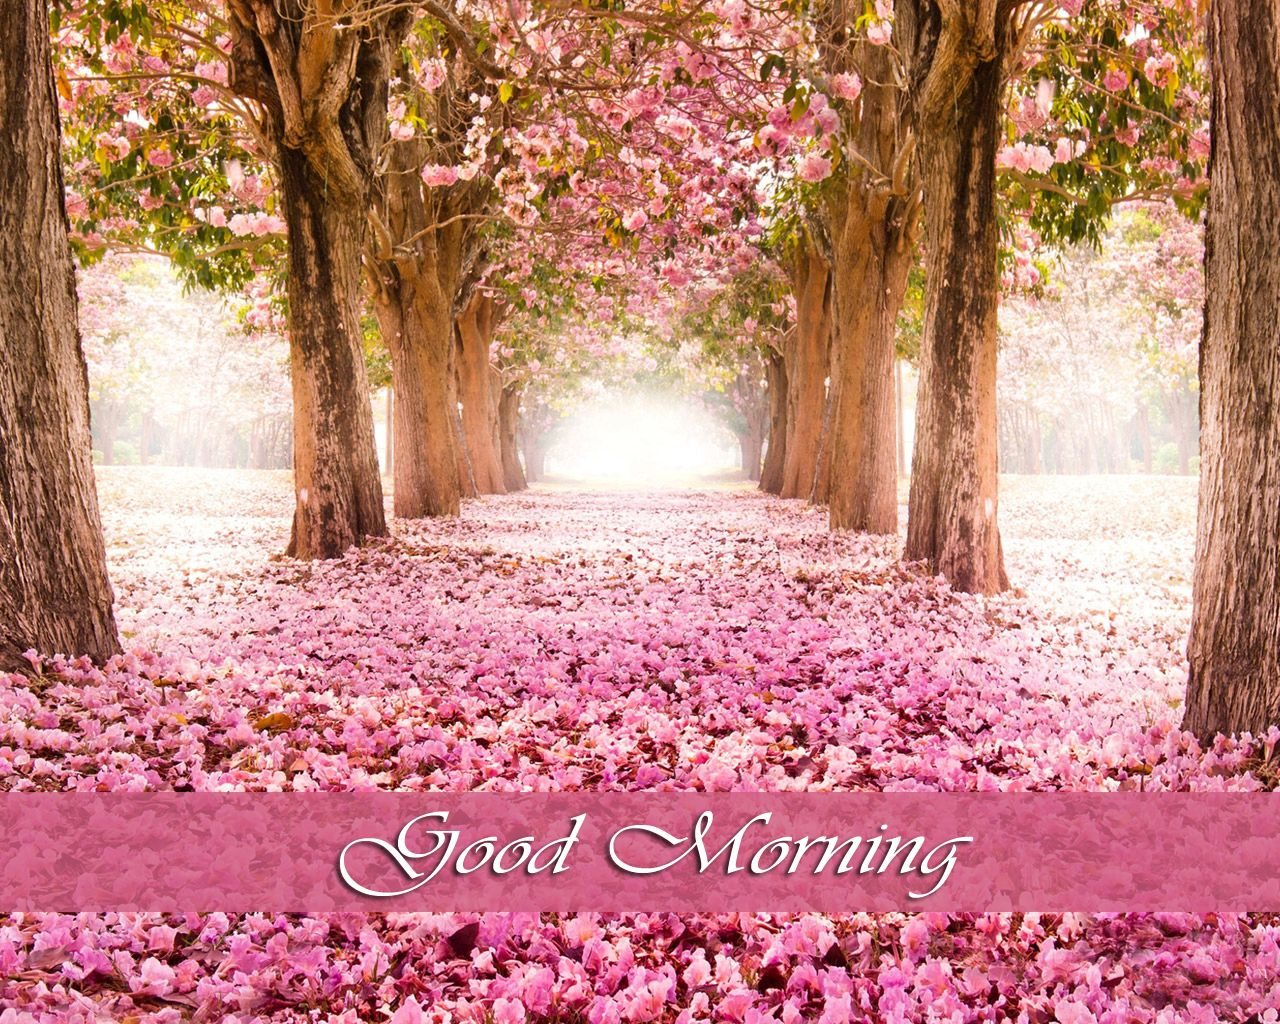 Good Morning Images Download Cherry Blossom Wallpaper Spring Wallpaper Pink Trees